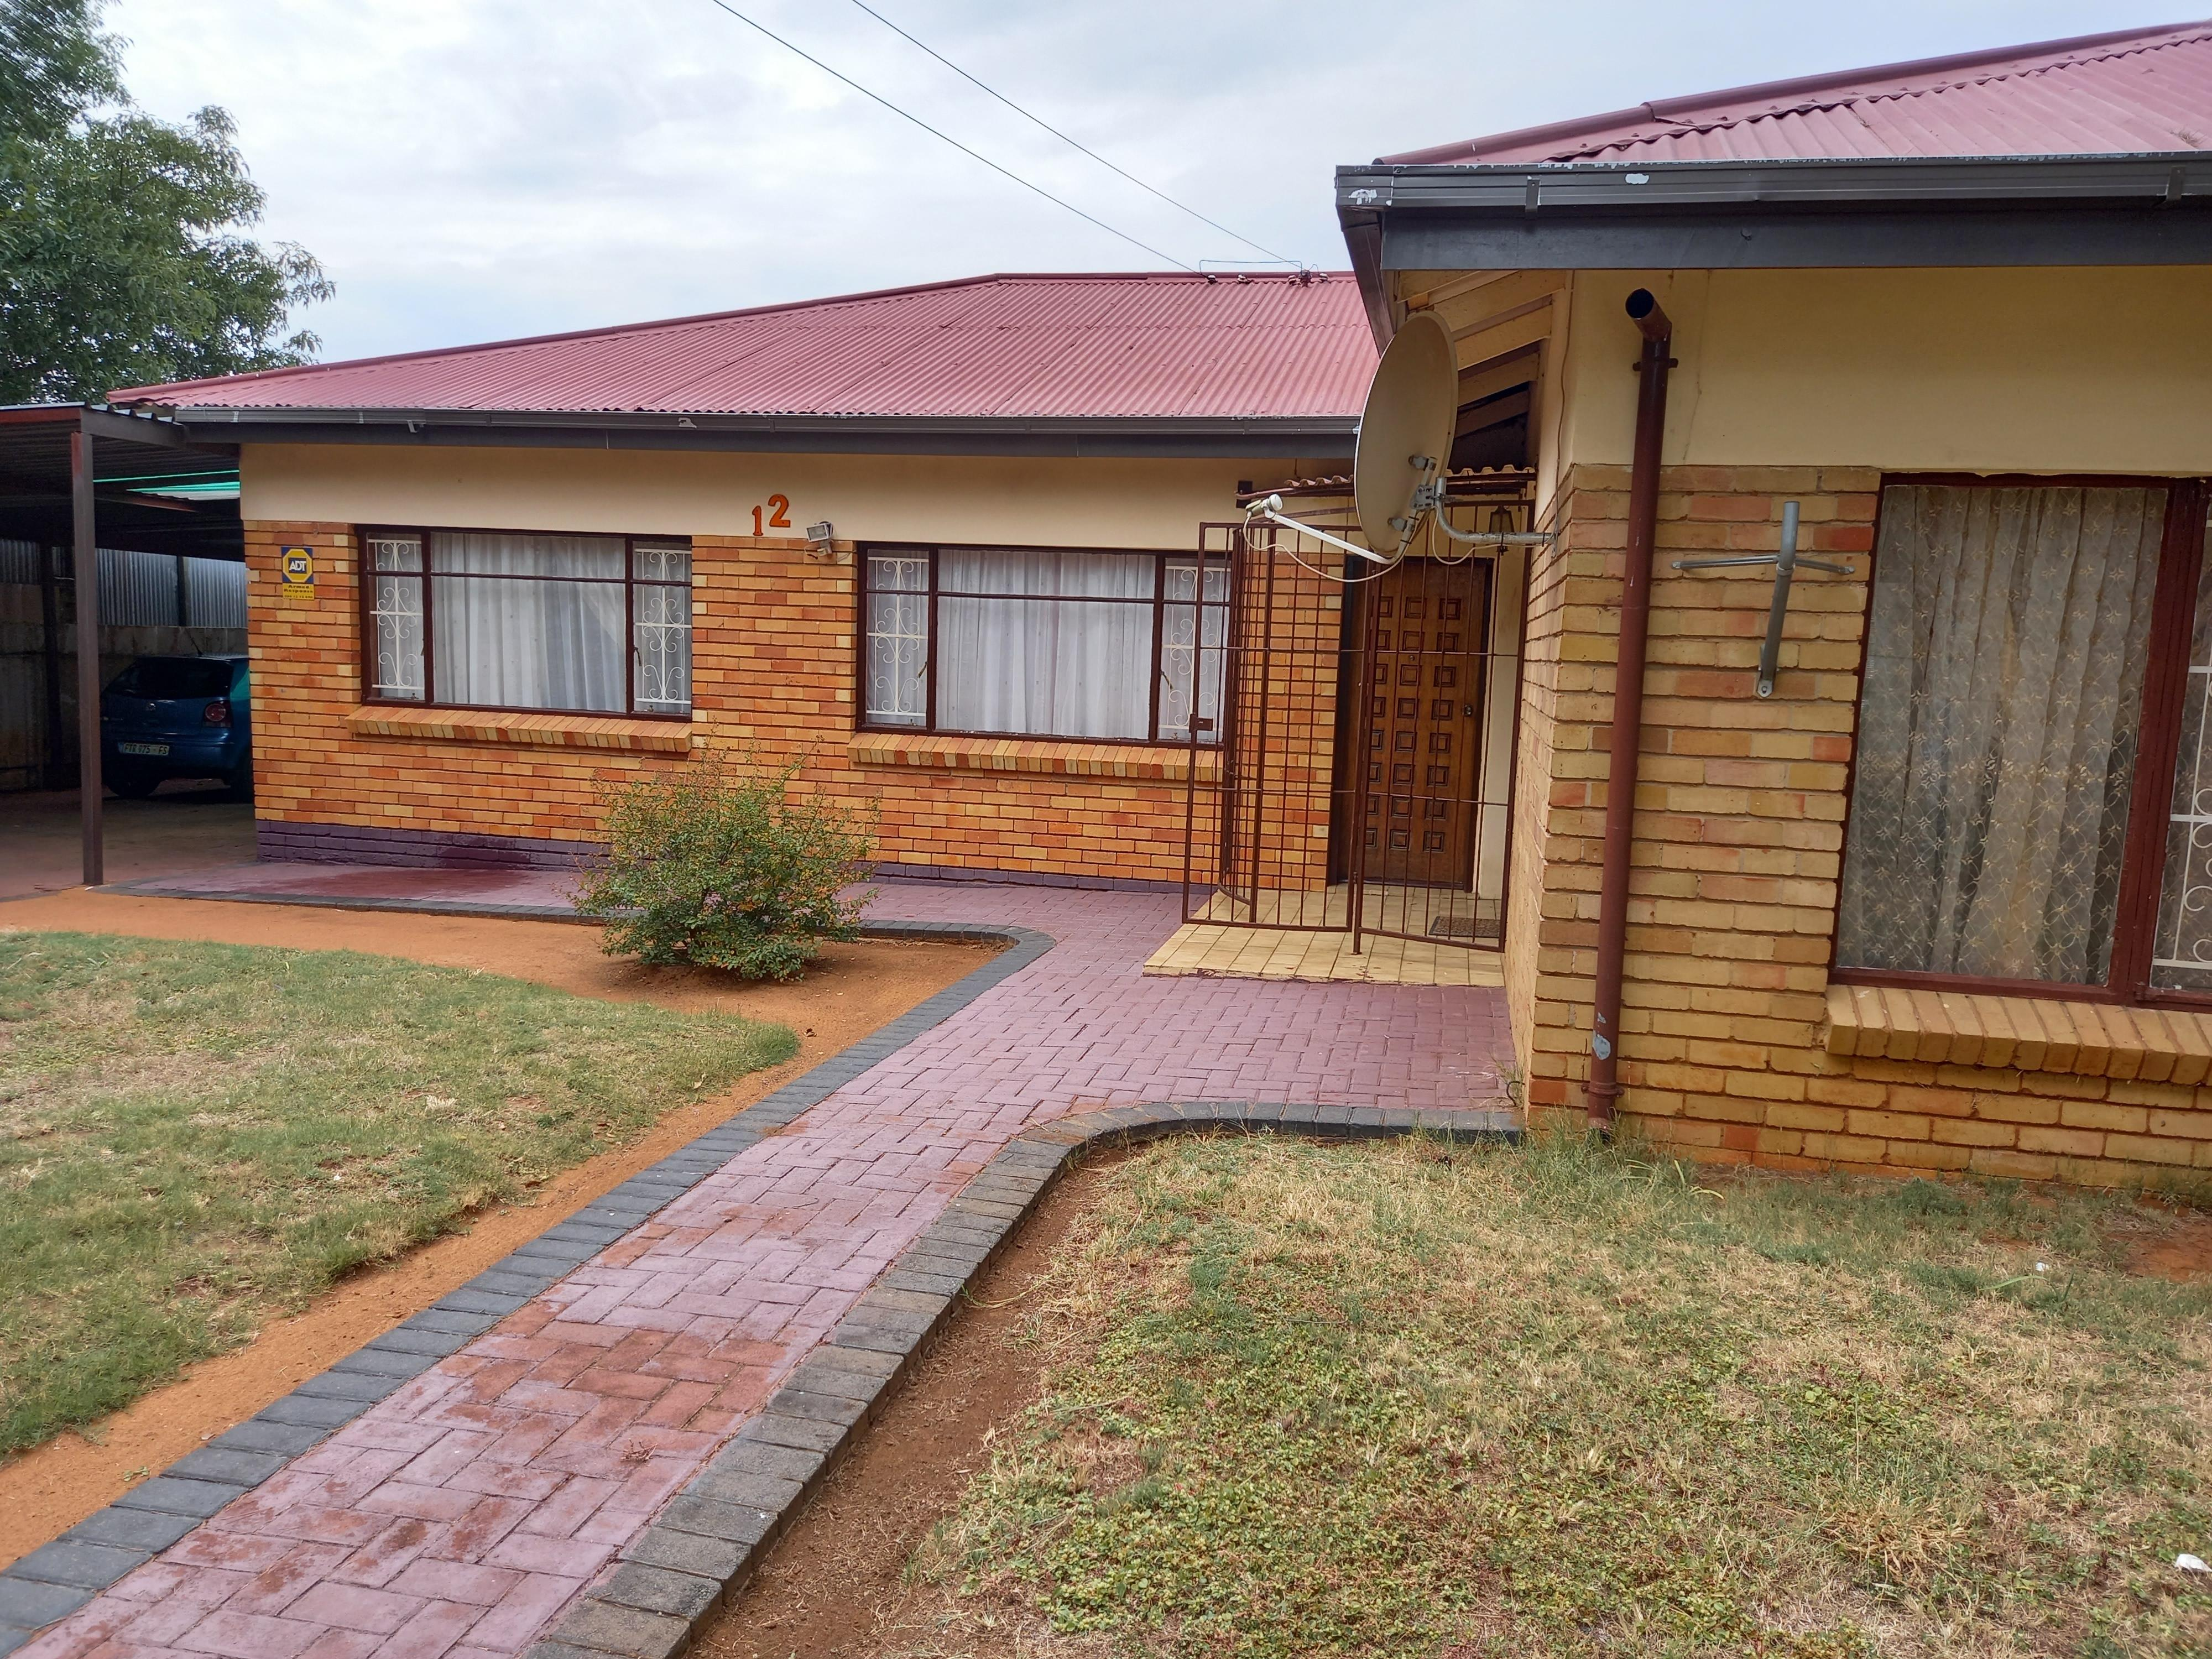 3 BEDROOM HOUSE WITH BUSINESS RIGHTS FOR SALE!